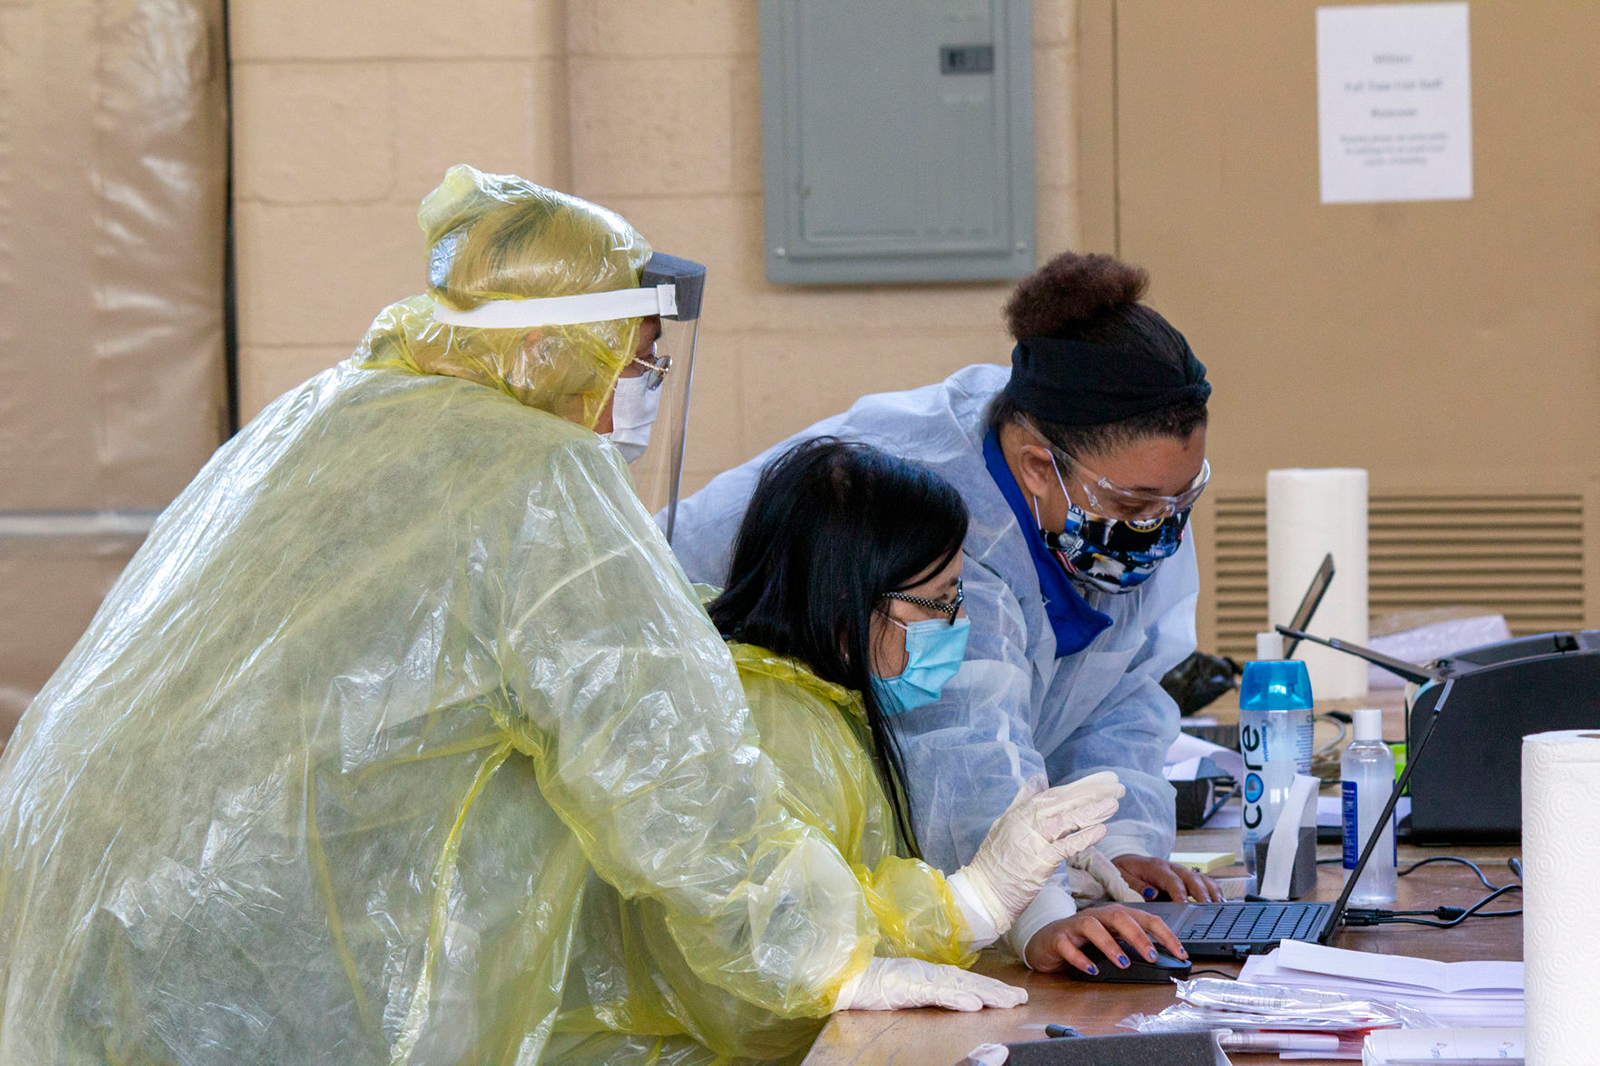 Medical workers with OptumServe Health Services prepare a Covid-19 test sample from a patient inside the National Guard Armory in La Porte, Indiana on May 6.